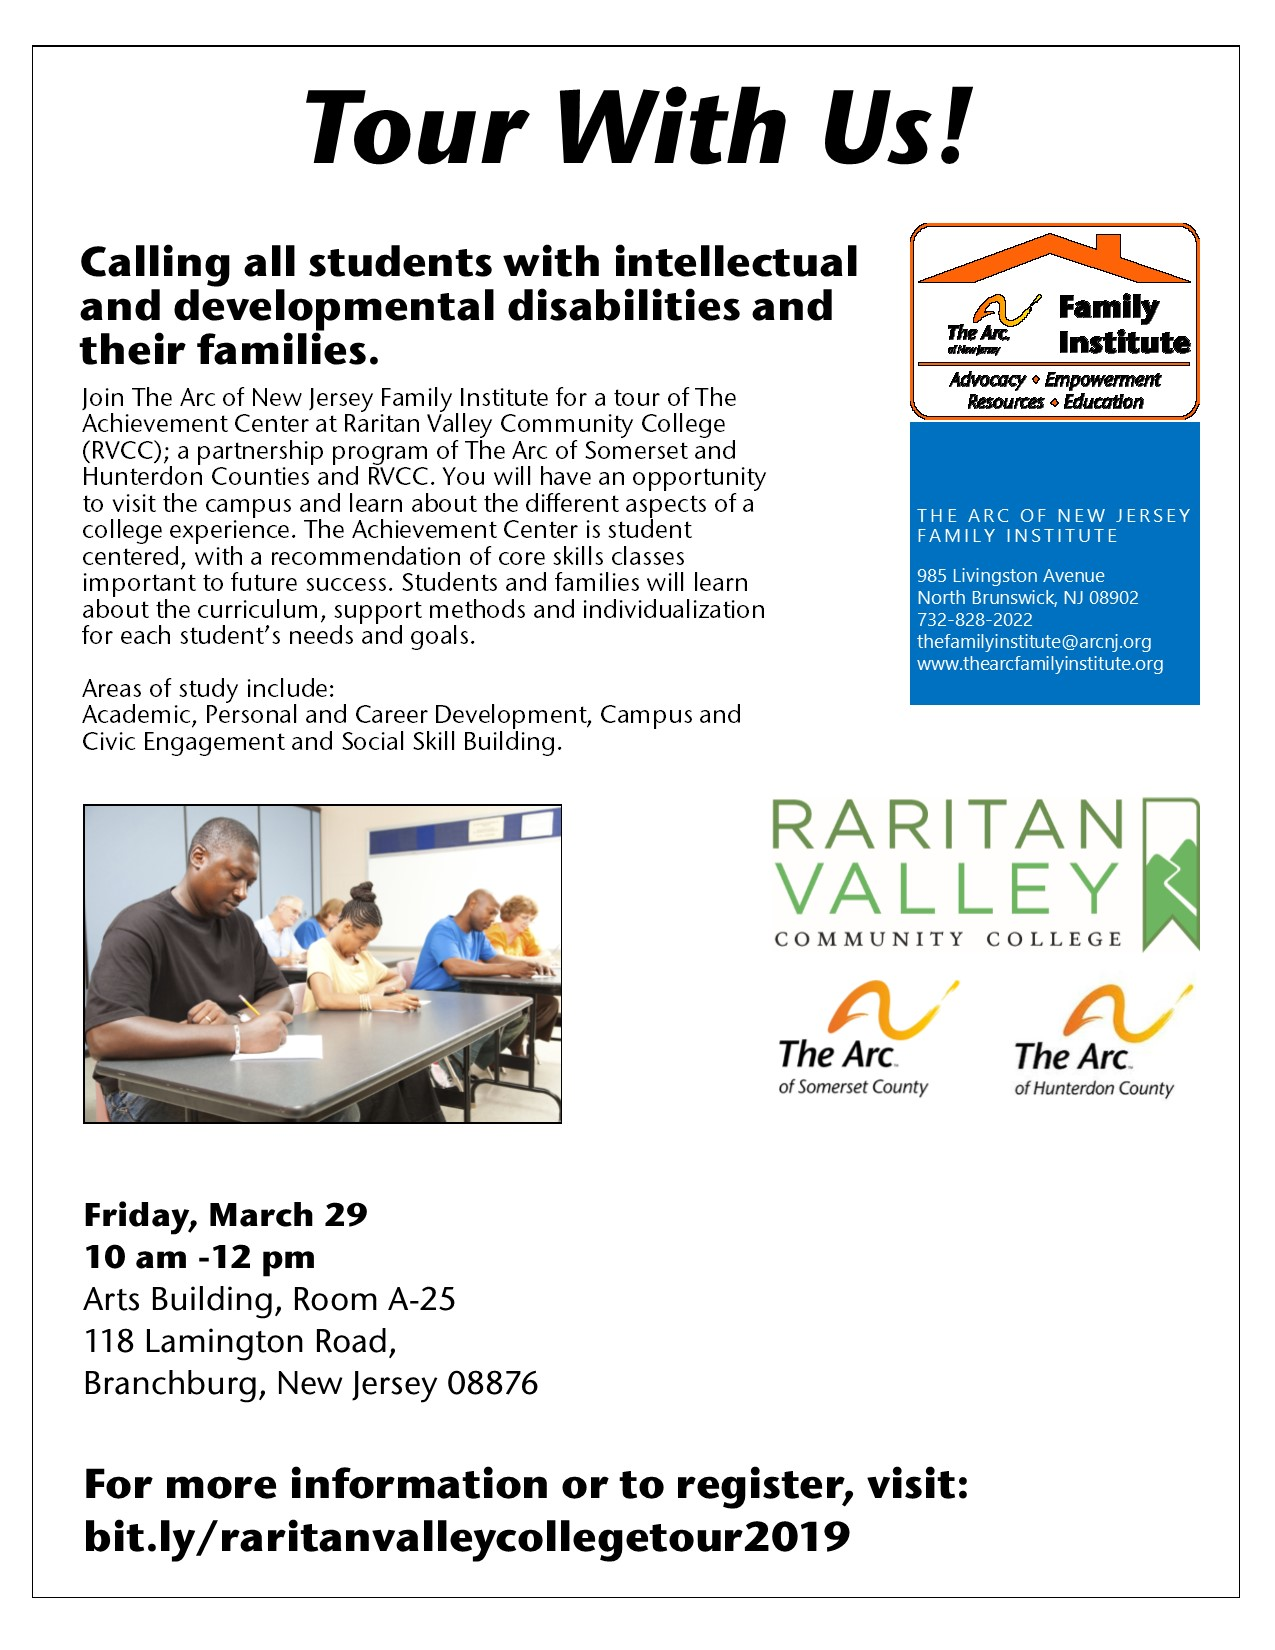 Friday, March 29 - The Achievement Center at Raritan Valley Community College